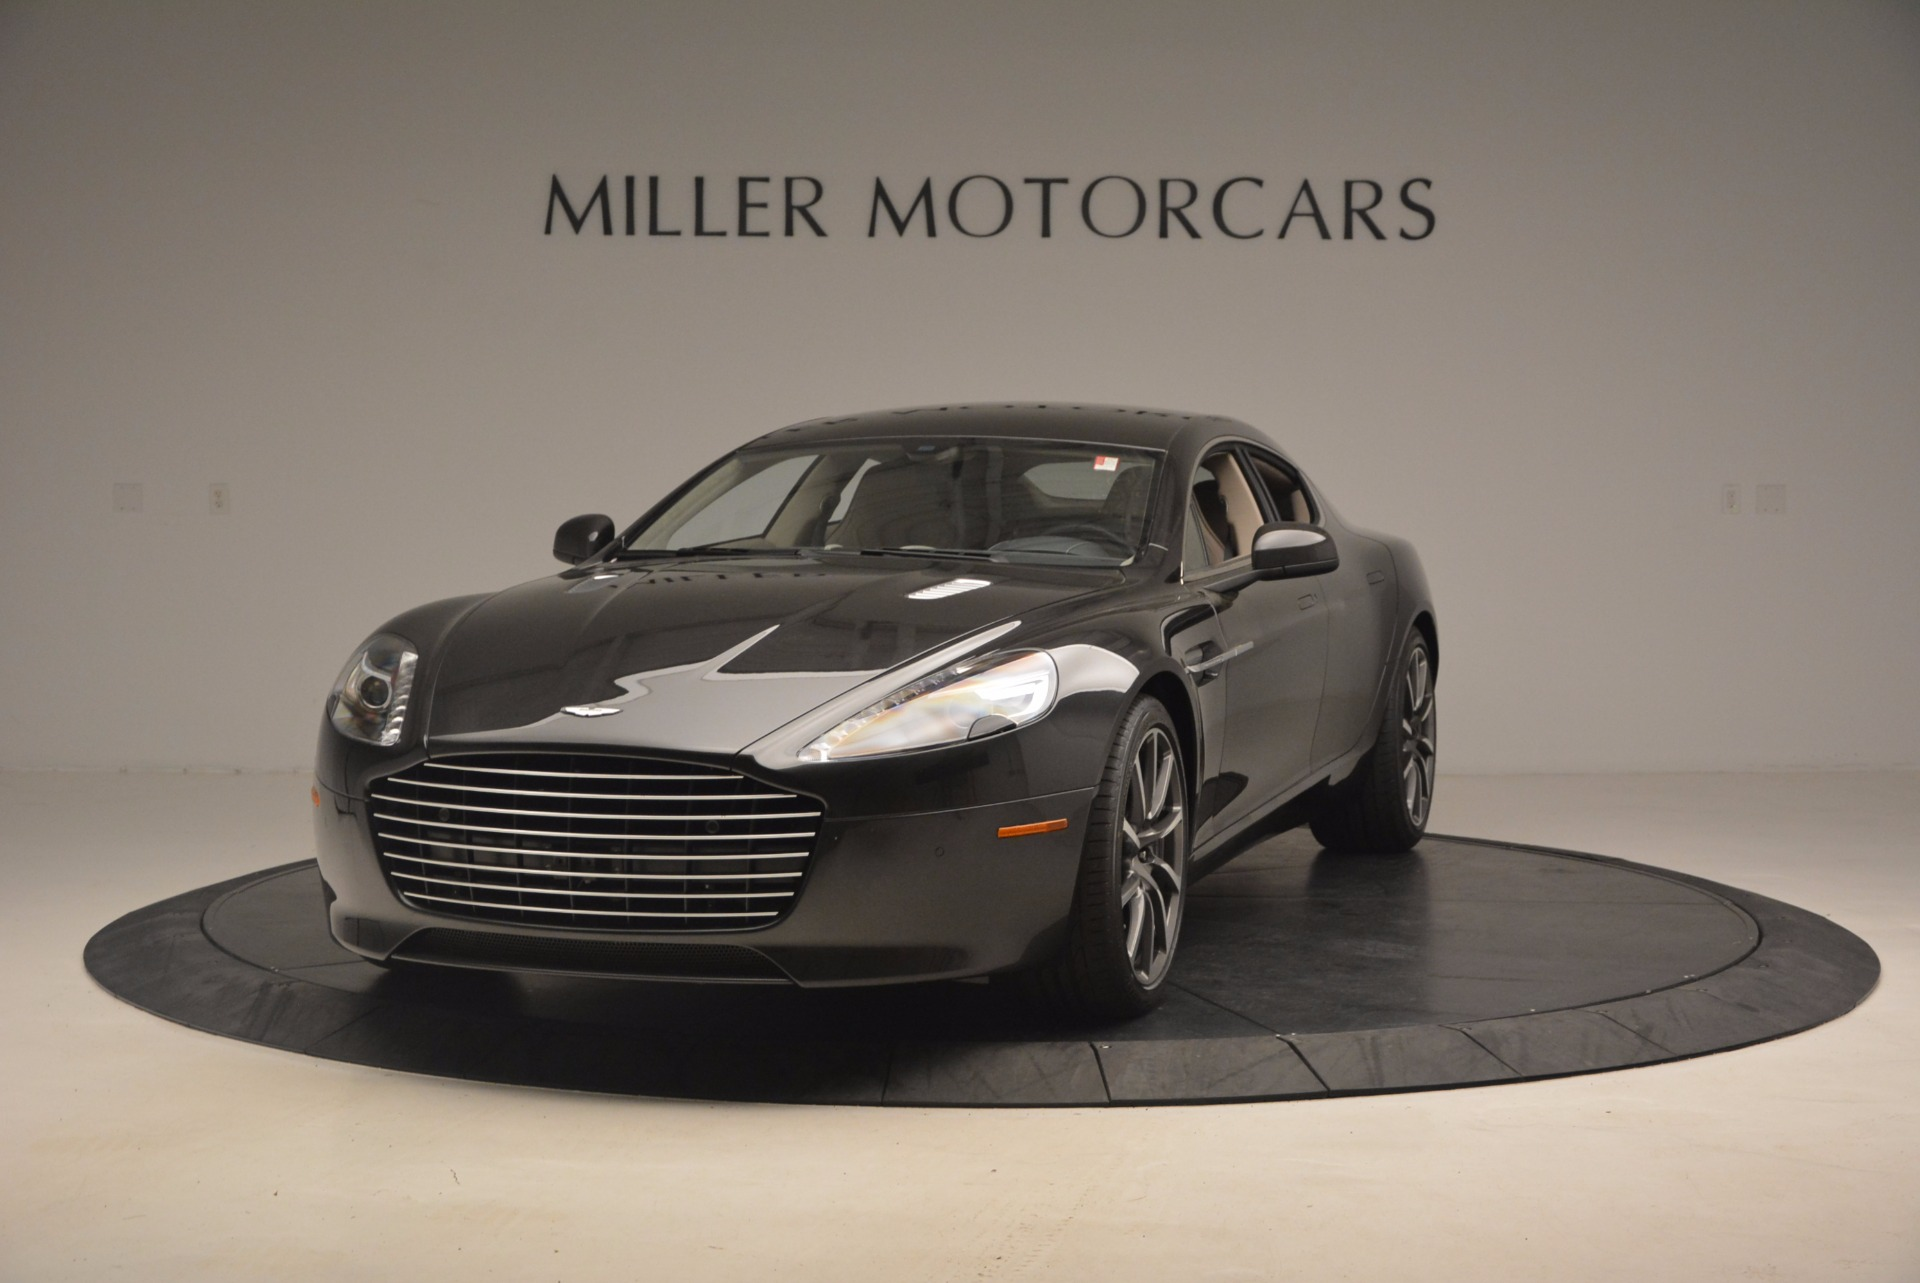 New 2017 Aston Martin Rapide S for sale Sold at Maserati of Westport in Westport CT 06880 1